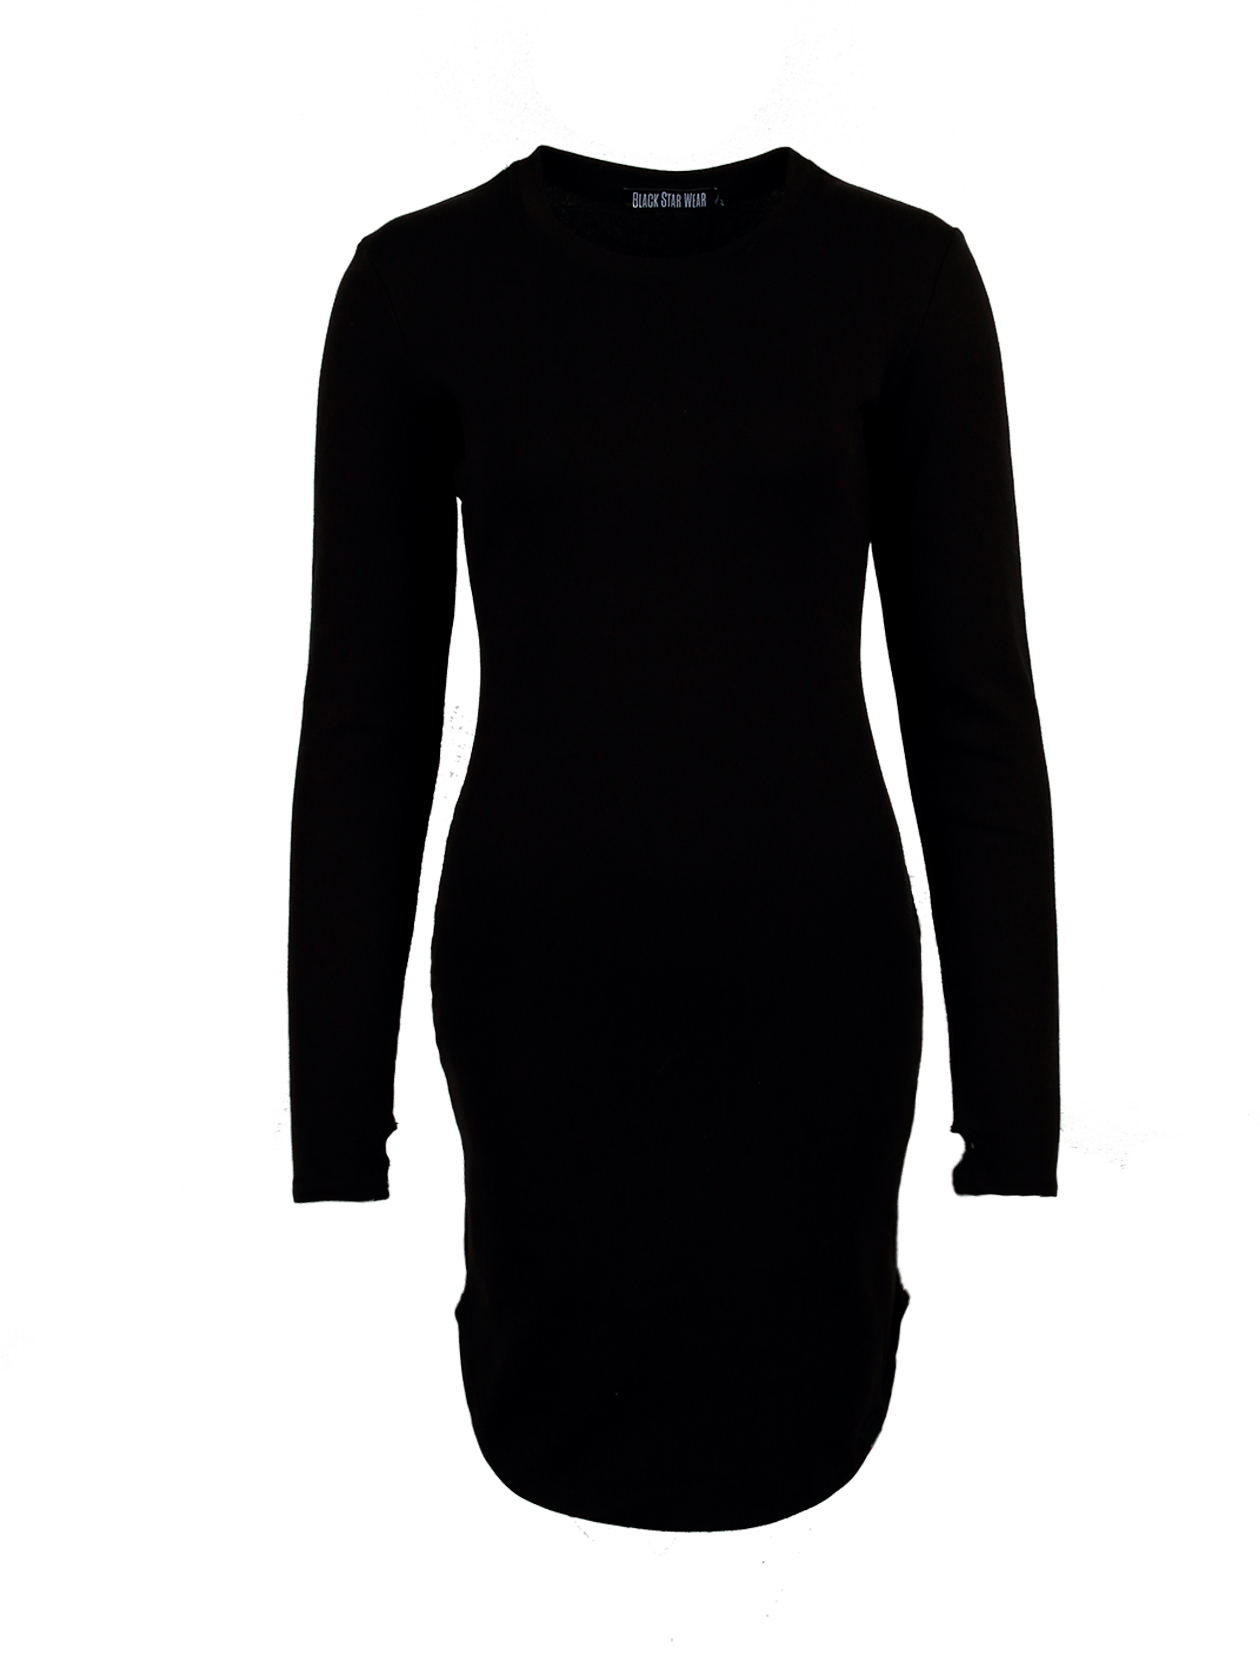 Womens dress TeaseWomens dress by Black Star Wear. Straight fit, o-neck, lond sleeves with a thumb hole. Assimetrical round cut. Small black label with #blackstar on the front. Natural cotton (95%) and lycra (5%) blend. Avaliable in red and khaki.<br><br>size: S<br>color: Black<br>gender: female